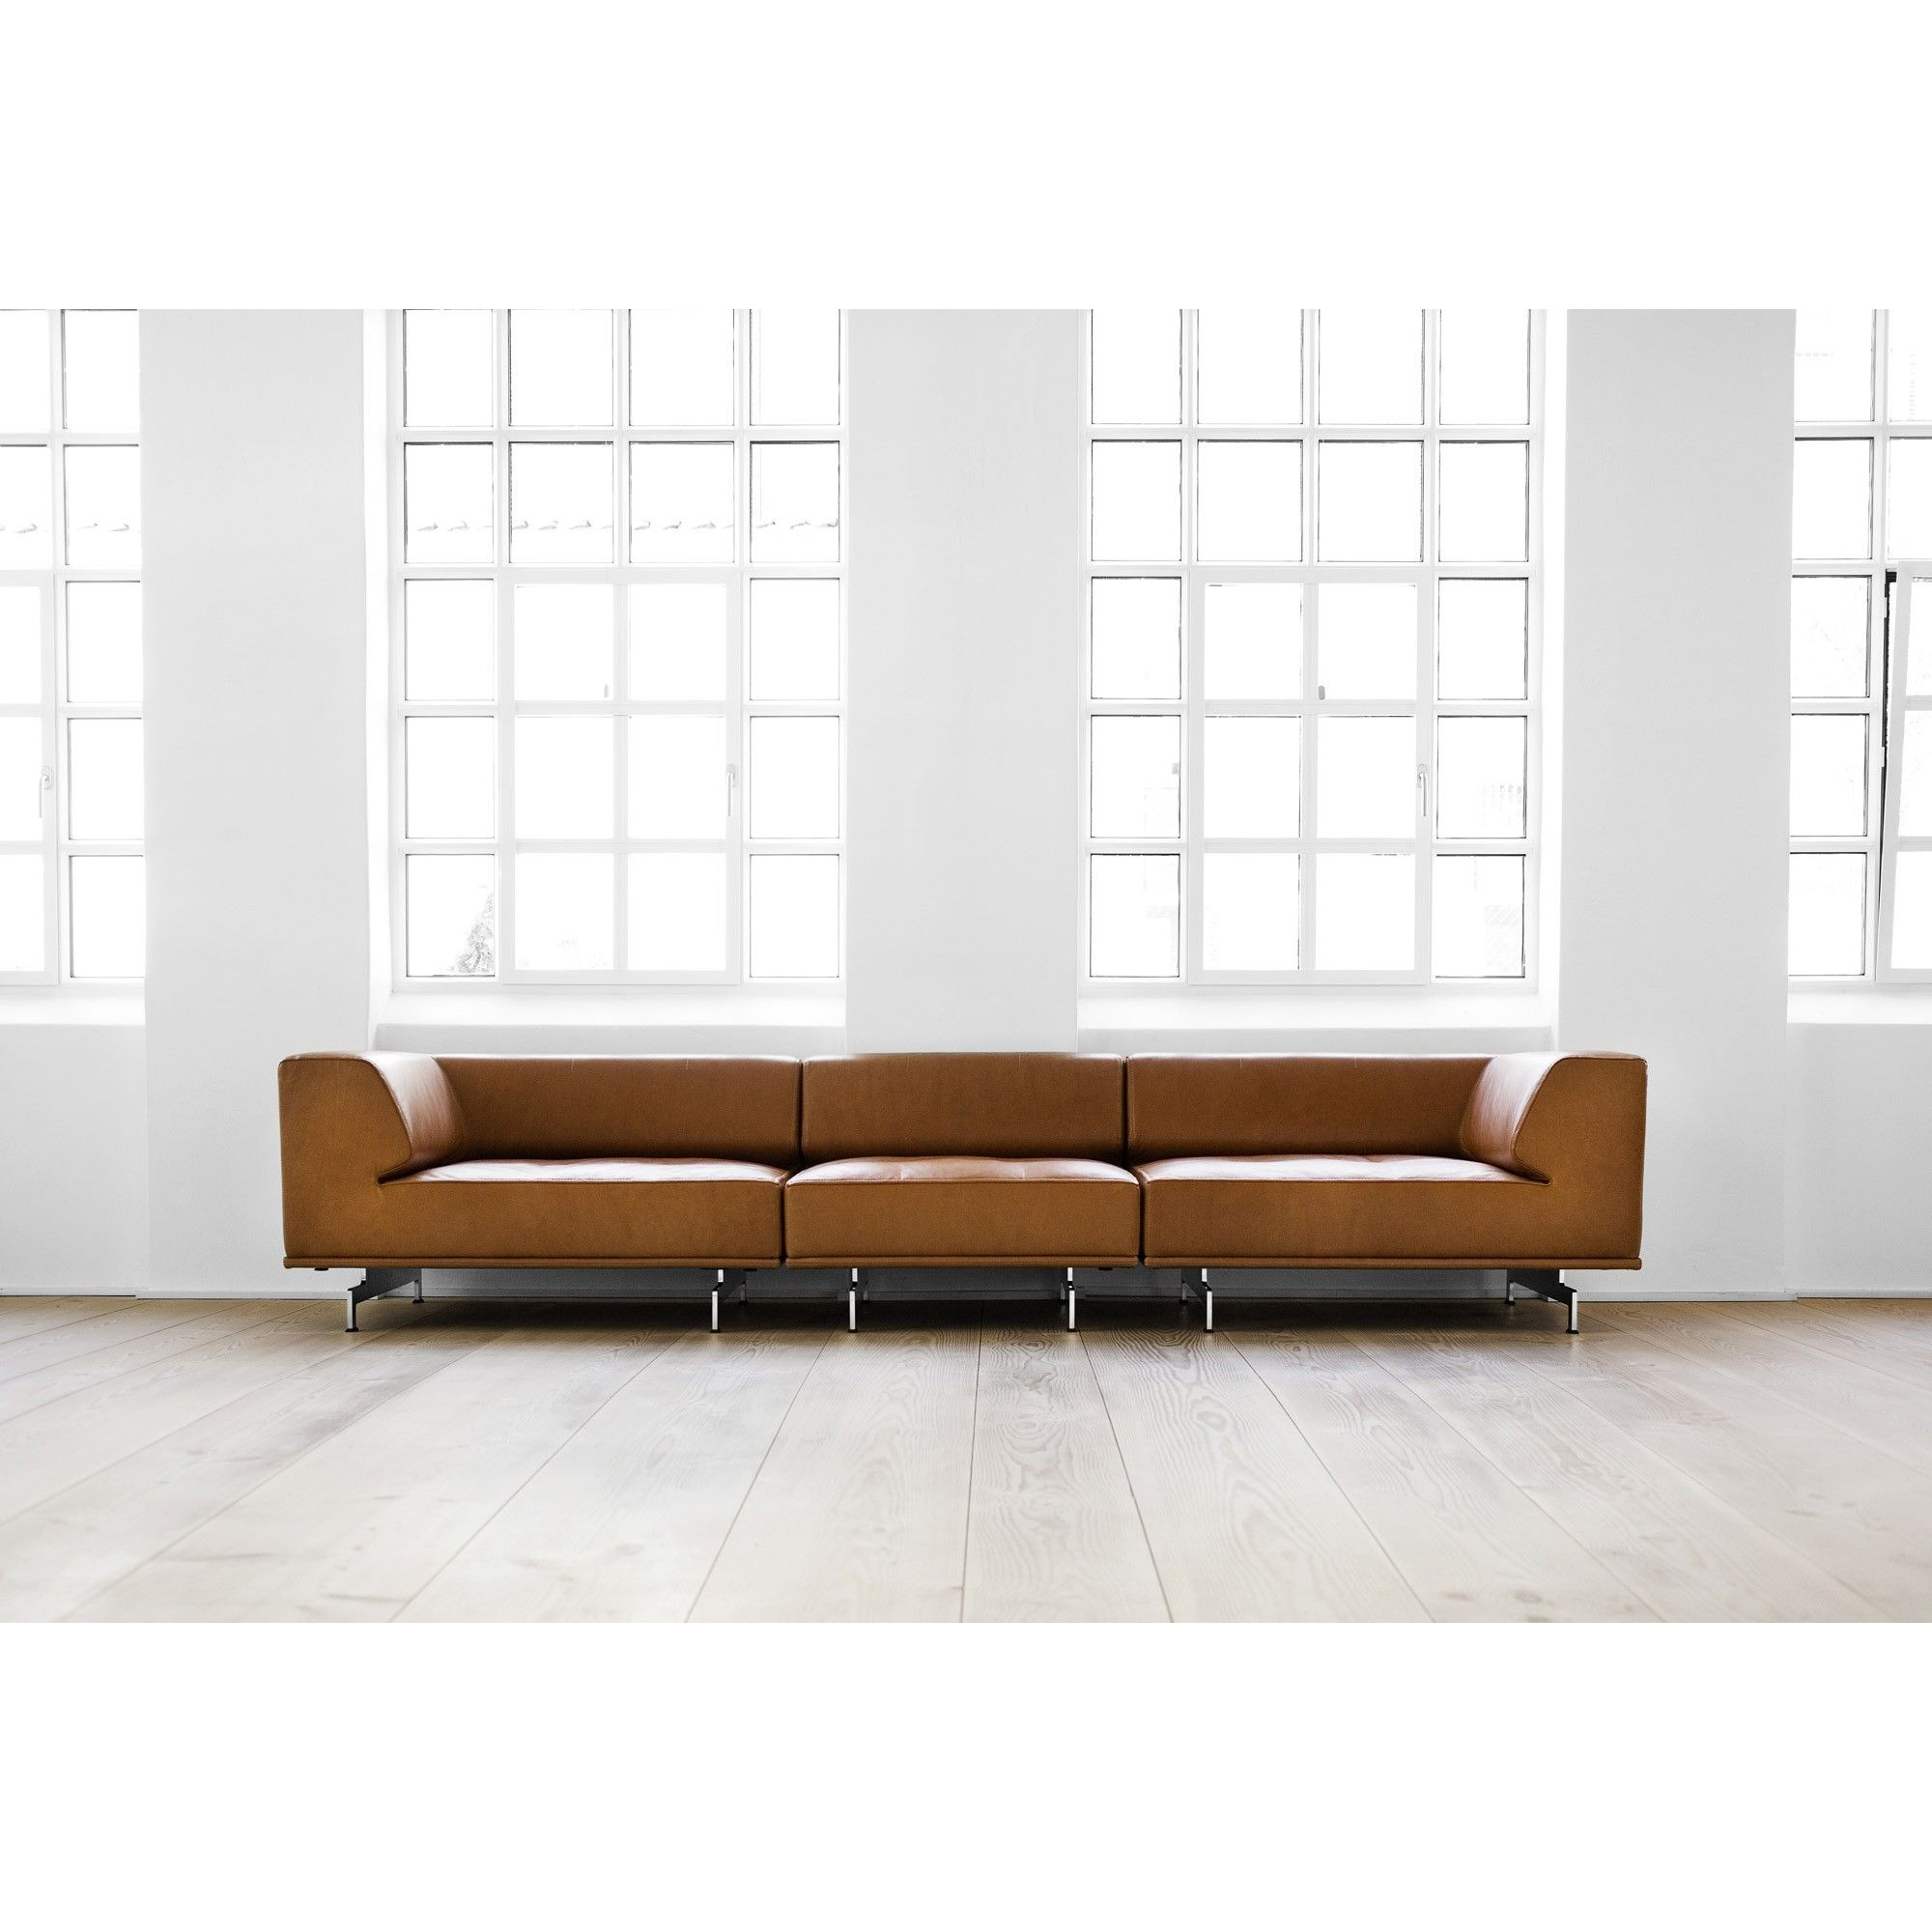 EJ 450 Delphi sofa by Erik Jorgensen The asymmetry between the